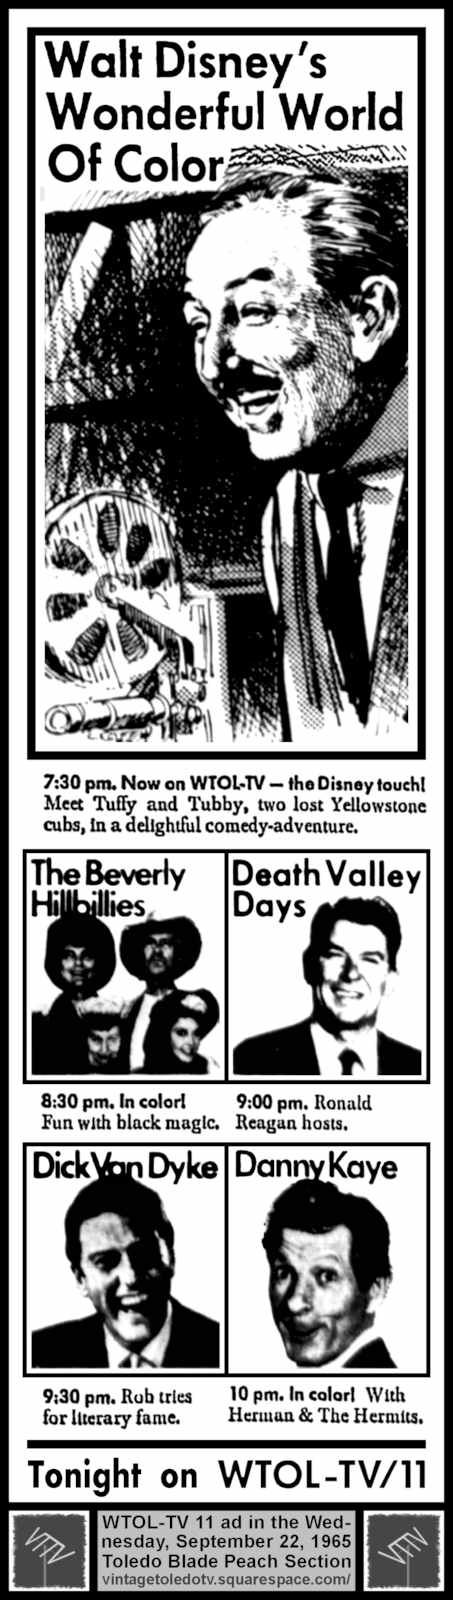 "Vintage Toledo TV - WTOL-TV 11 Print Ads - Wednesday Night Shows (9/22/65) Walt Disney's Wonderful World of Color ""The Yellowstone Cubs"" on NBC, shown on a three-day delay,The Beverly Hillbillies ""That Old Black Magic"" on CBS, the syndicated Death Valley Days, The Dick Van Dyke Show ""A Farewell to Writing"" on CBS and The Danny Kaye Show, also on CBS. Disney was shown instead of Lost in Space on CBS, which could be seen on Detroit's channel 2."